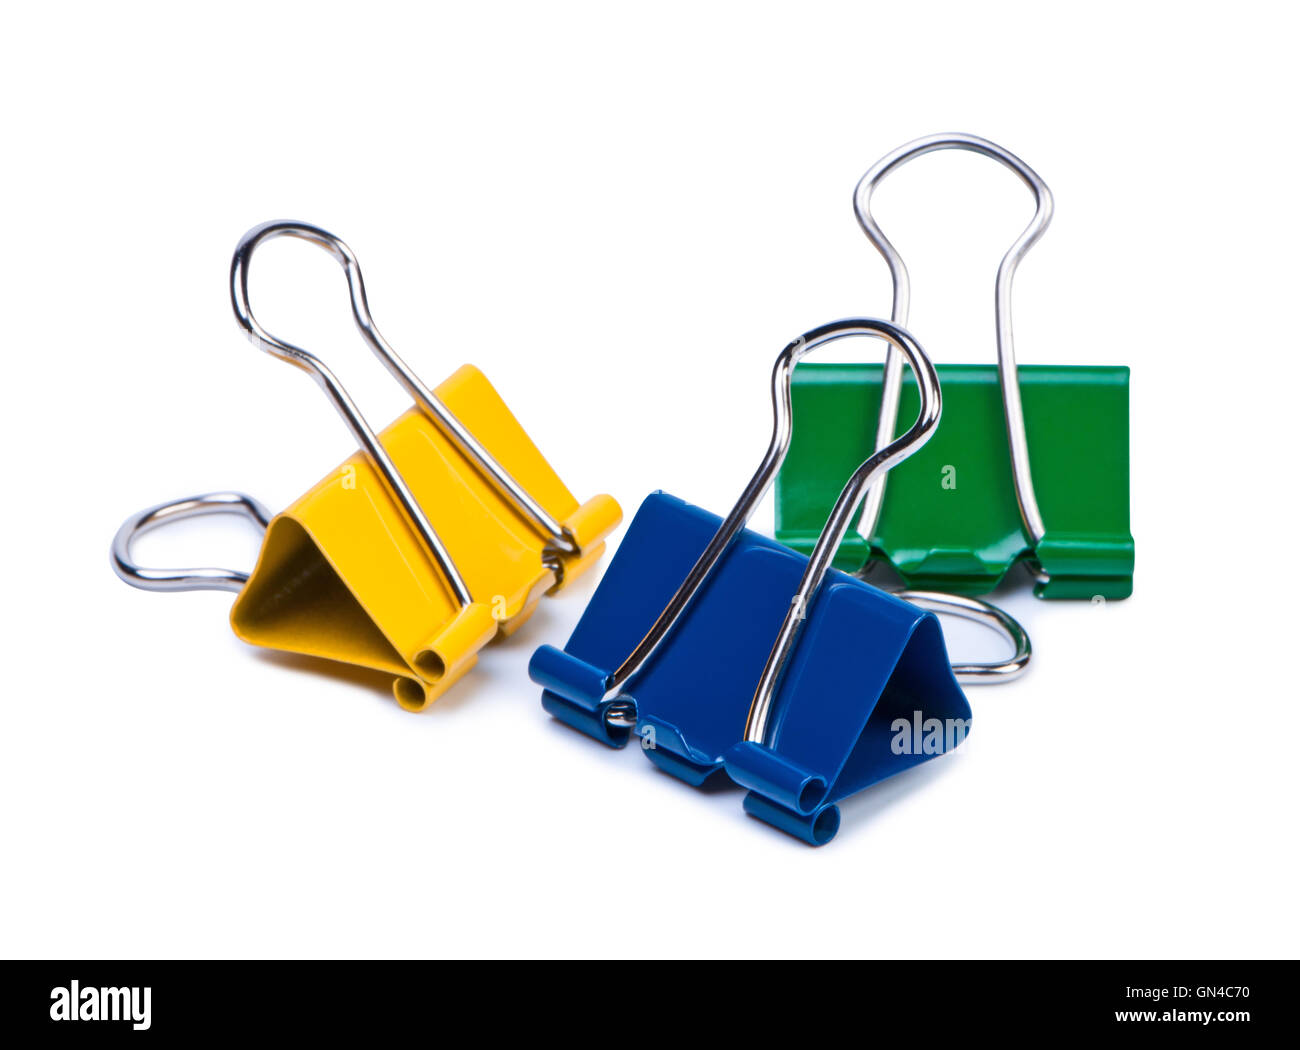 Color paper clips on white background. - Stock Image